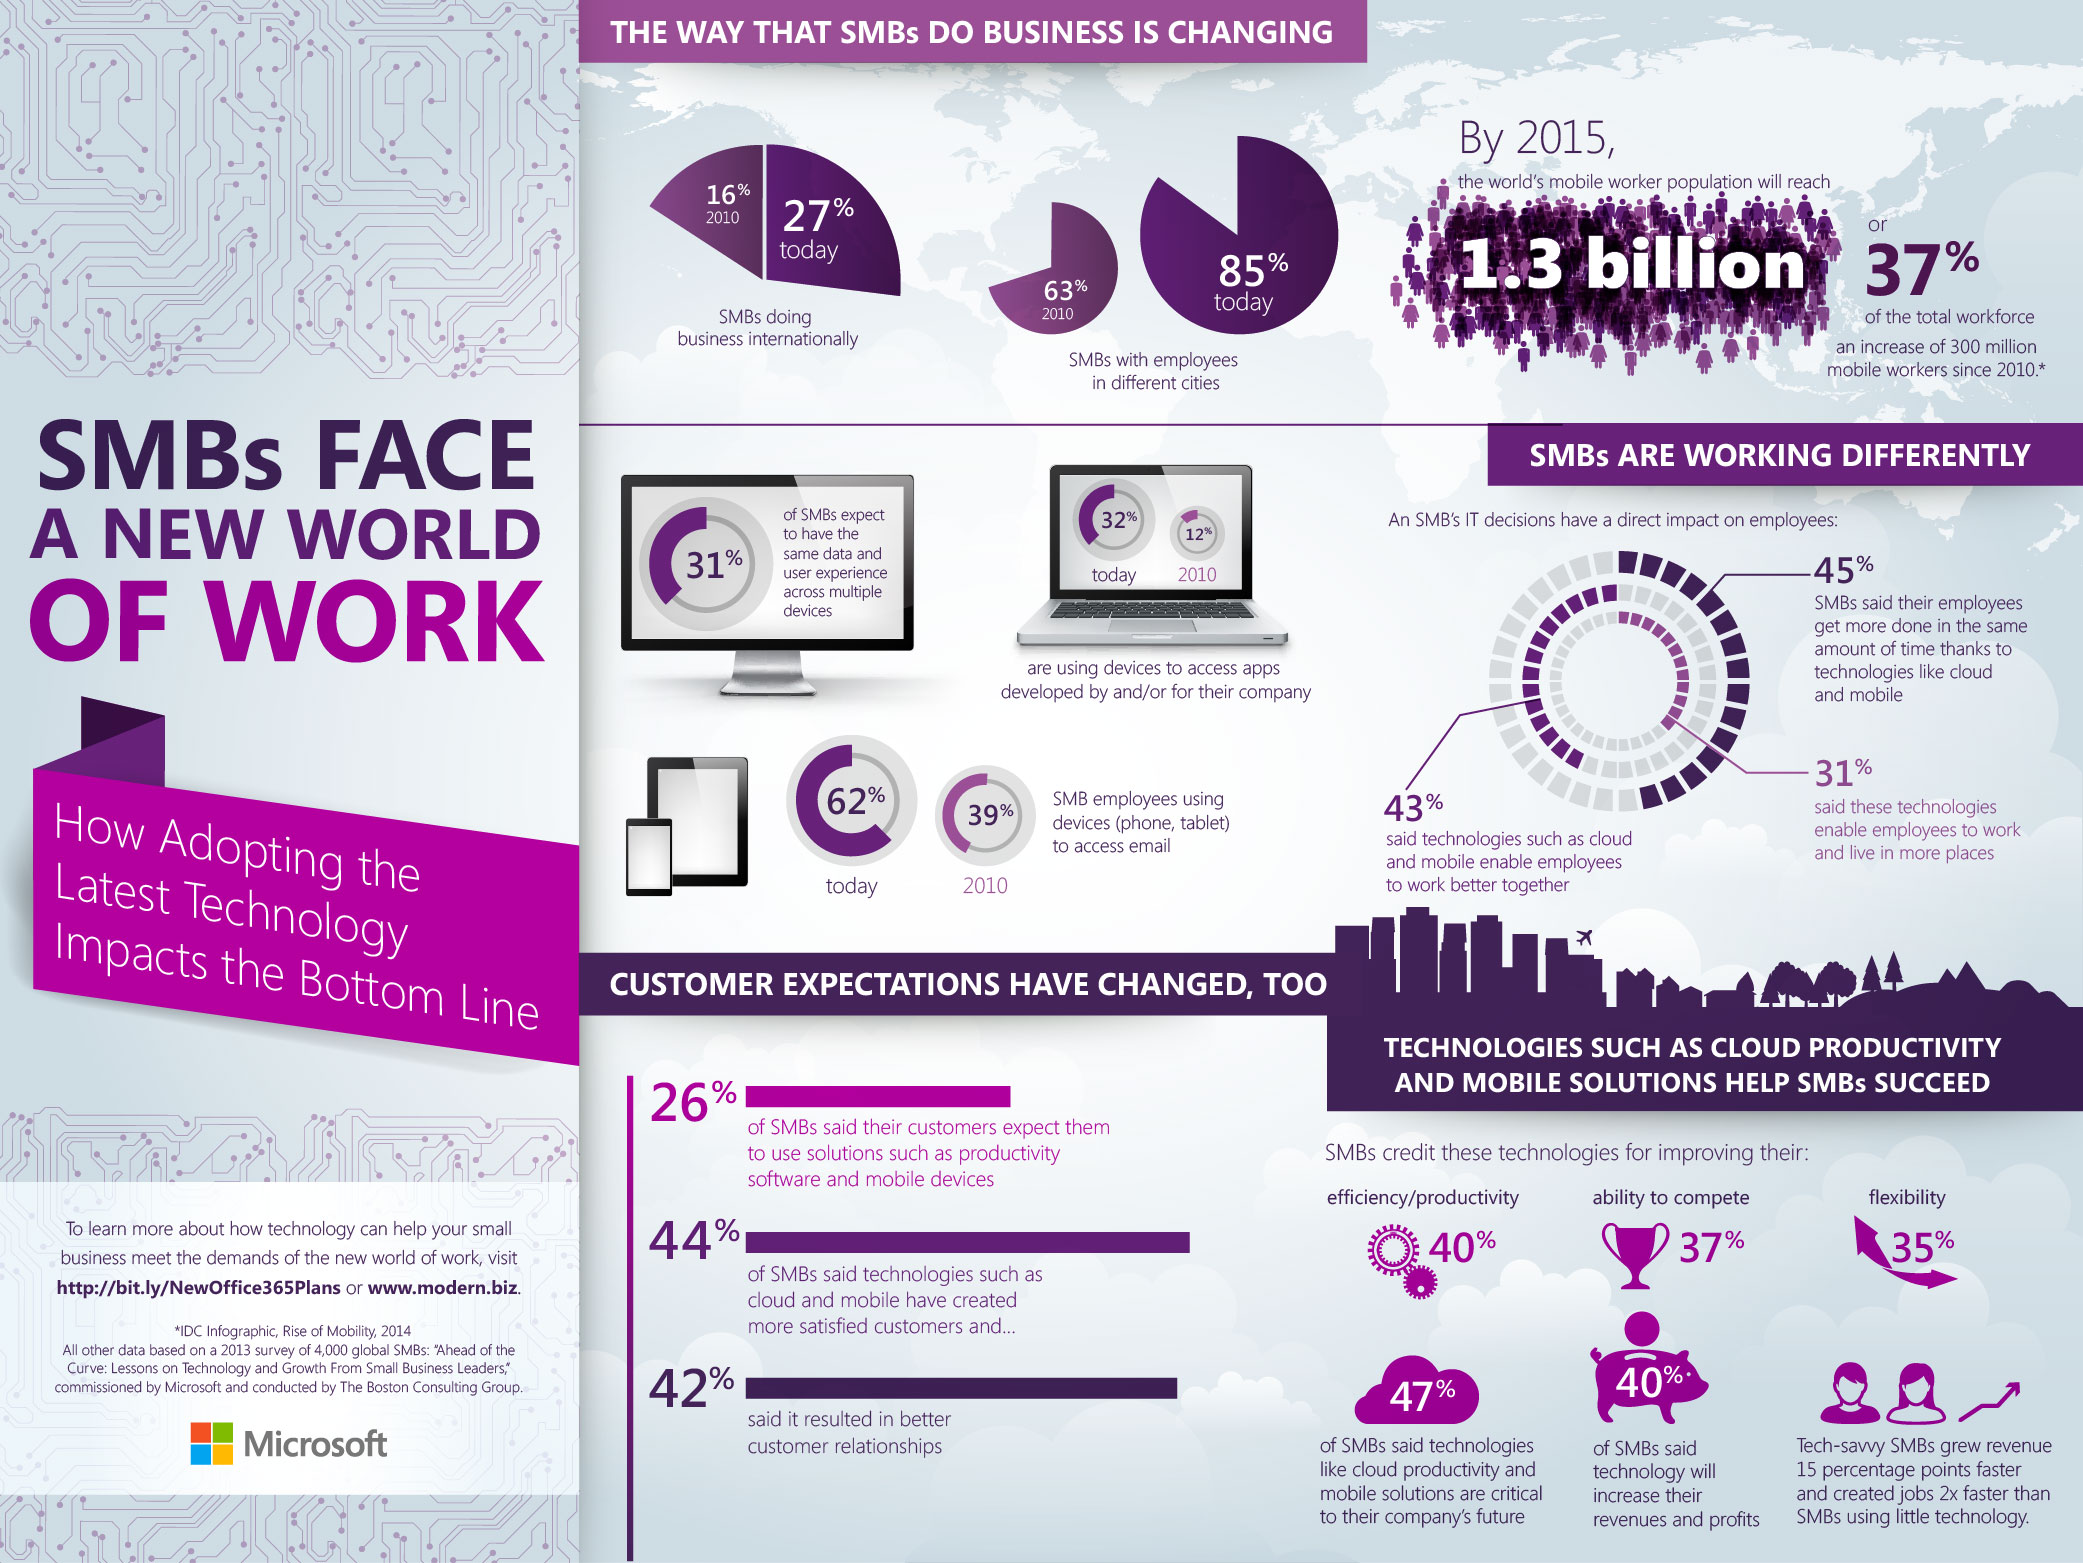 SMBs Face a New World of Work